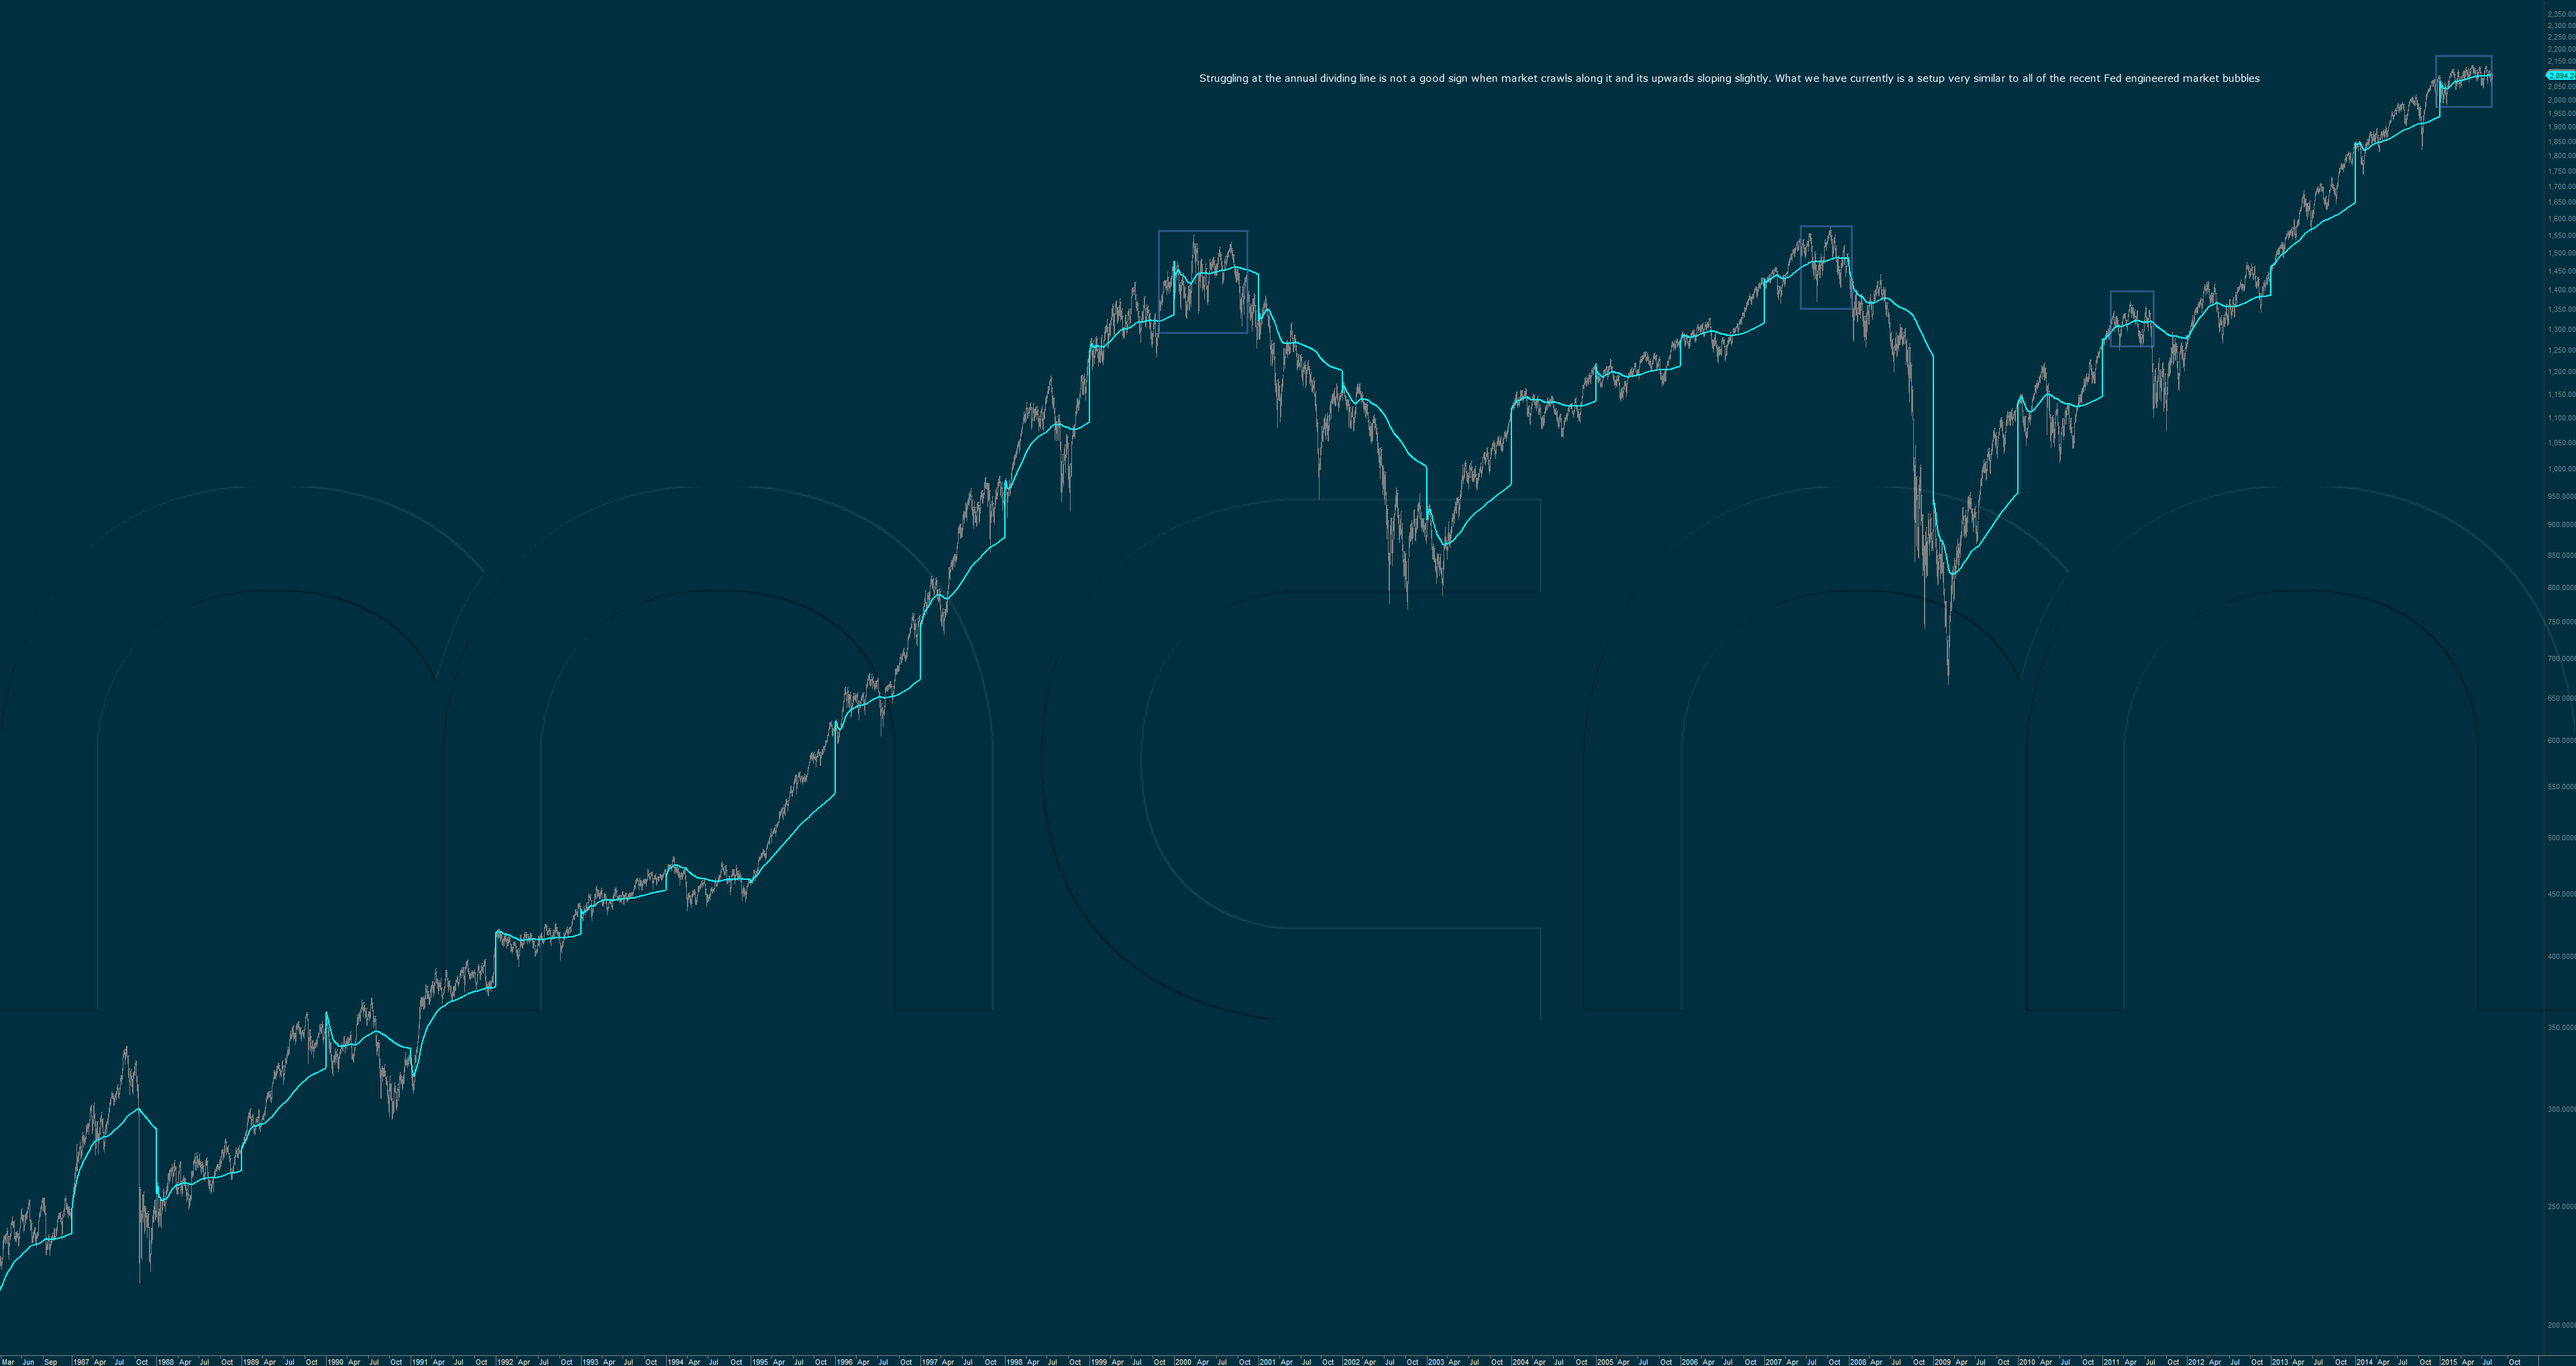 S&P500 Cash Index Annual Dividing Line